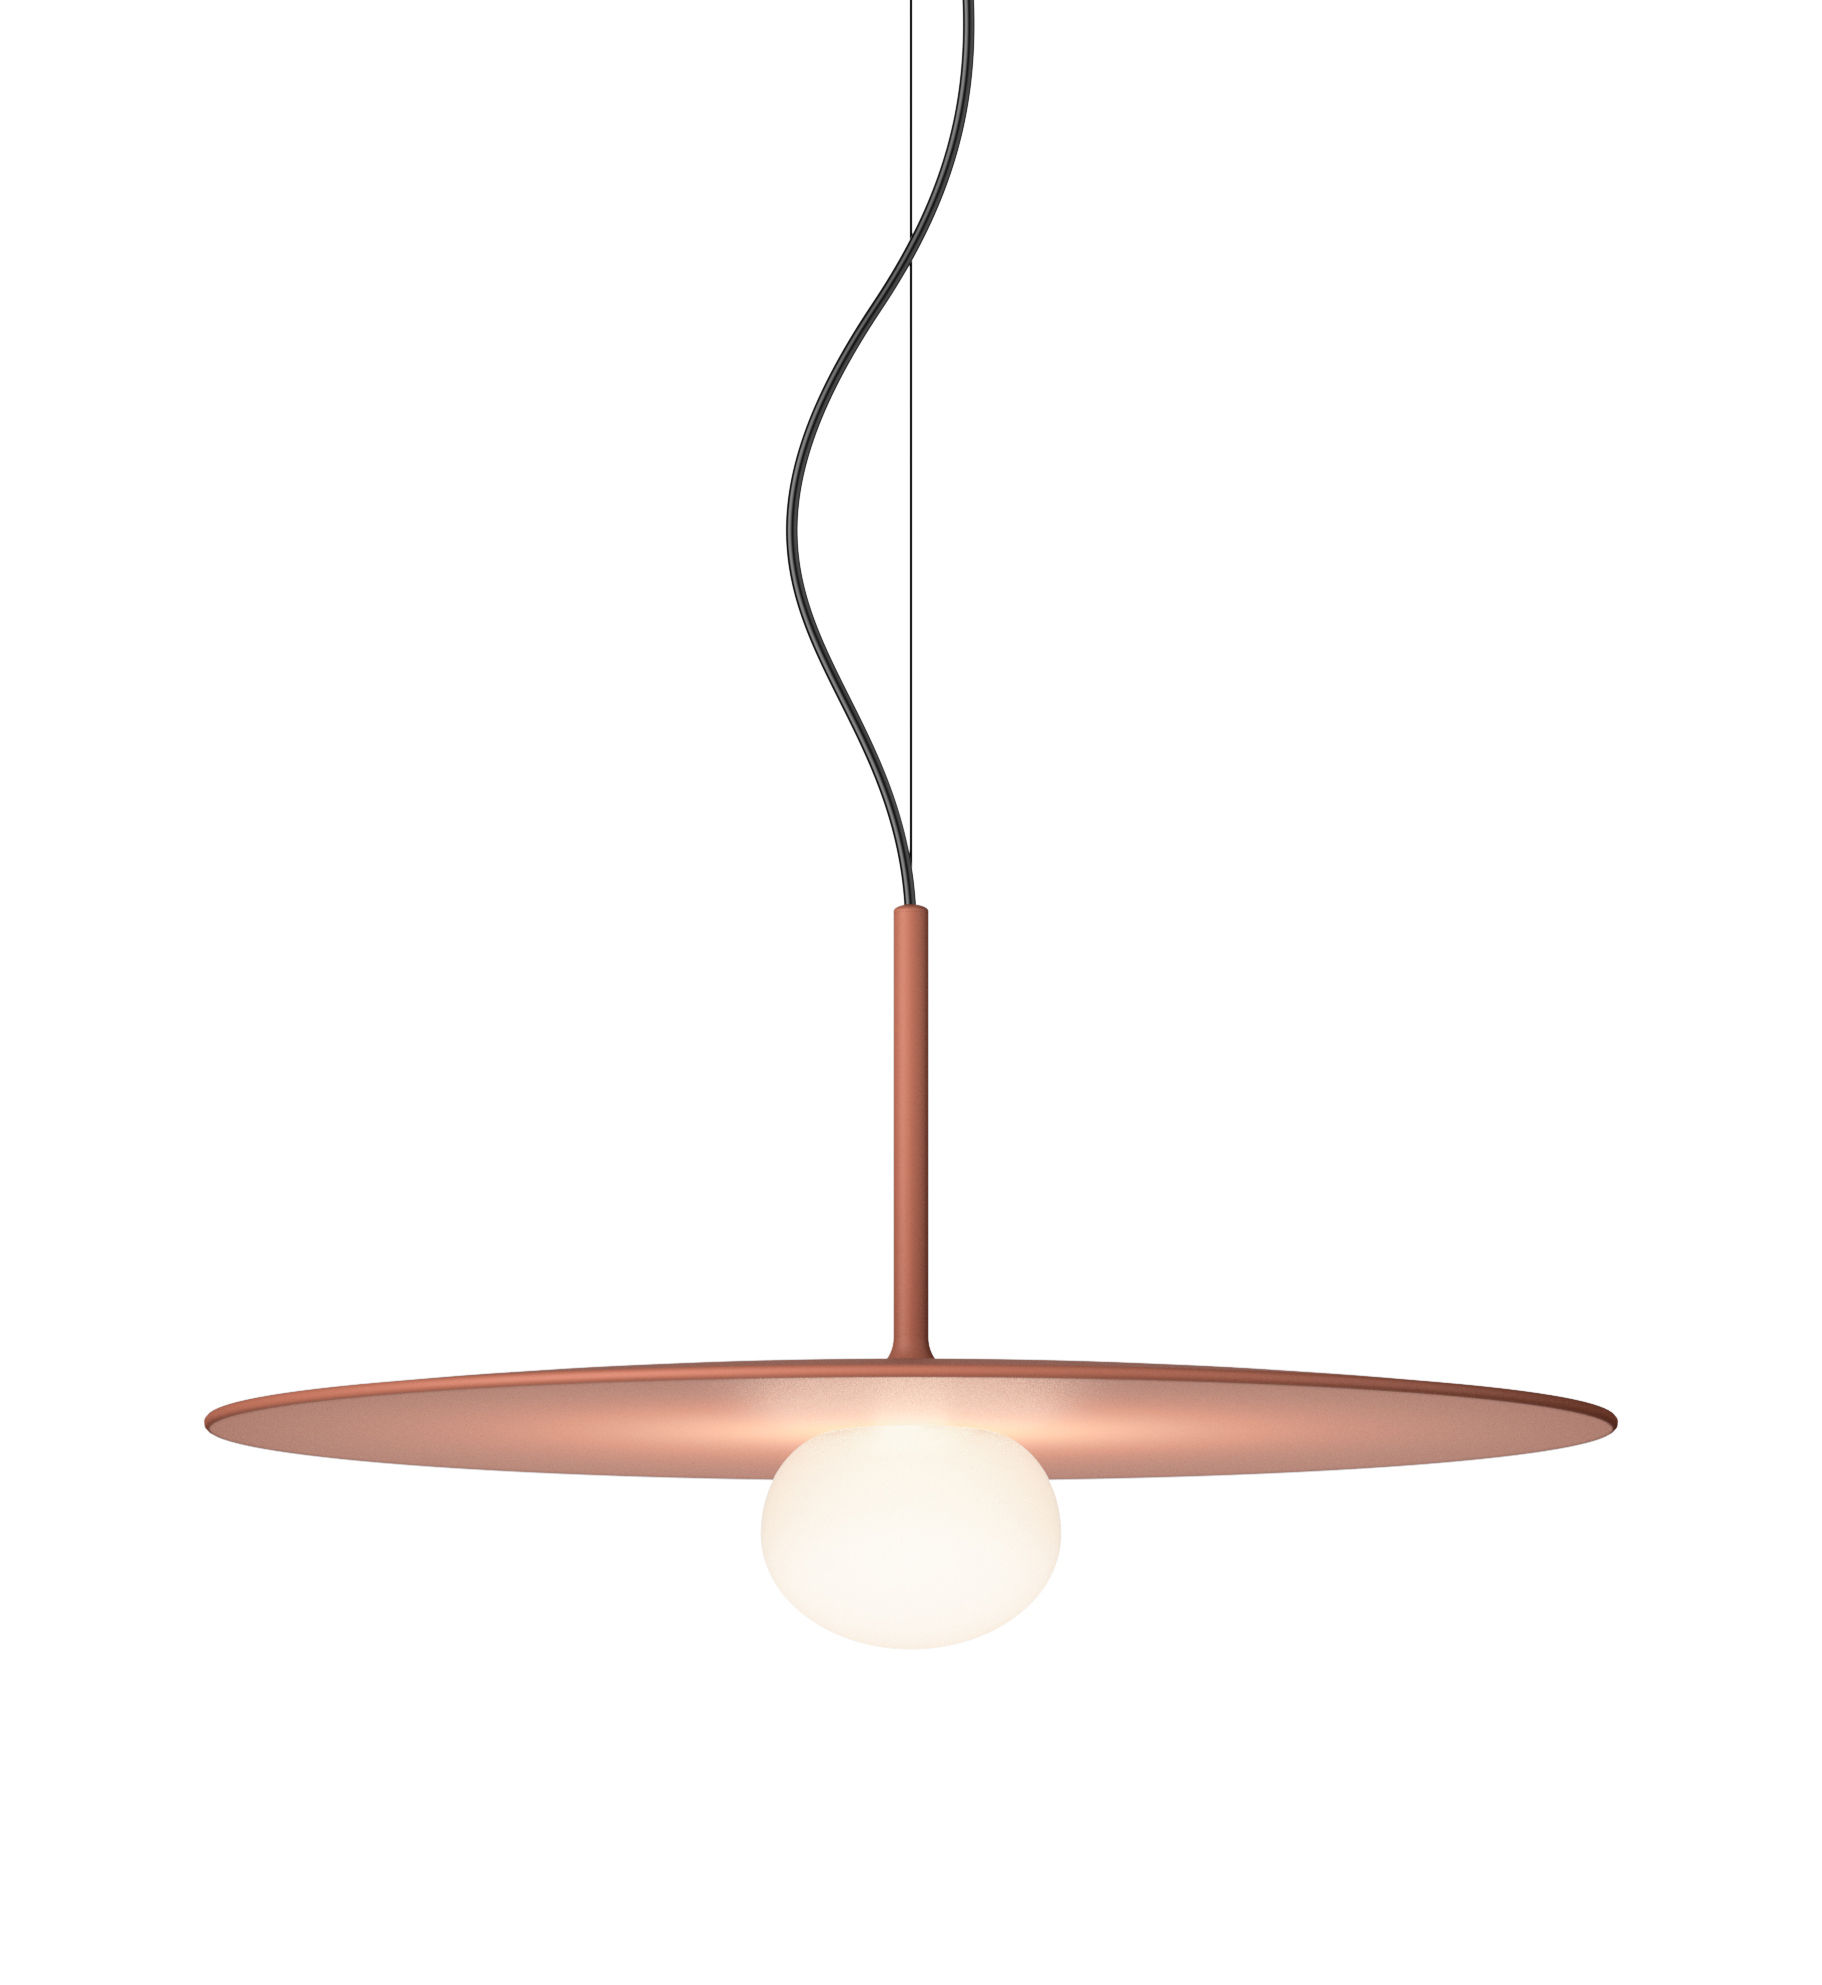 Lighting - Pendant Lighting - Tempo Disque  Large Pendant - / LED - Ø 40 cm by Vibia - Terracotta - Blown glass, Lacquered aluminium